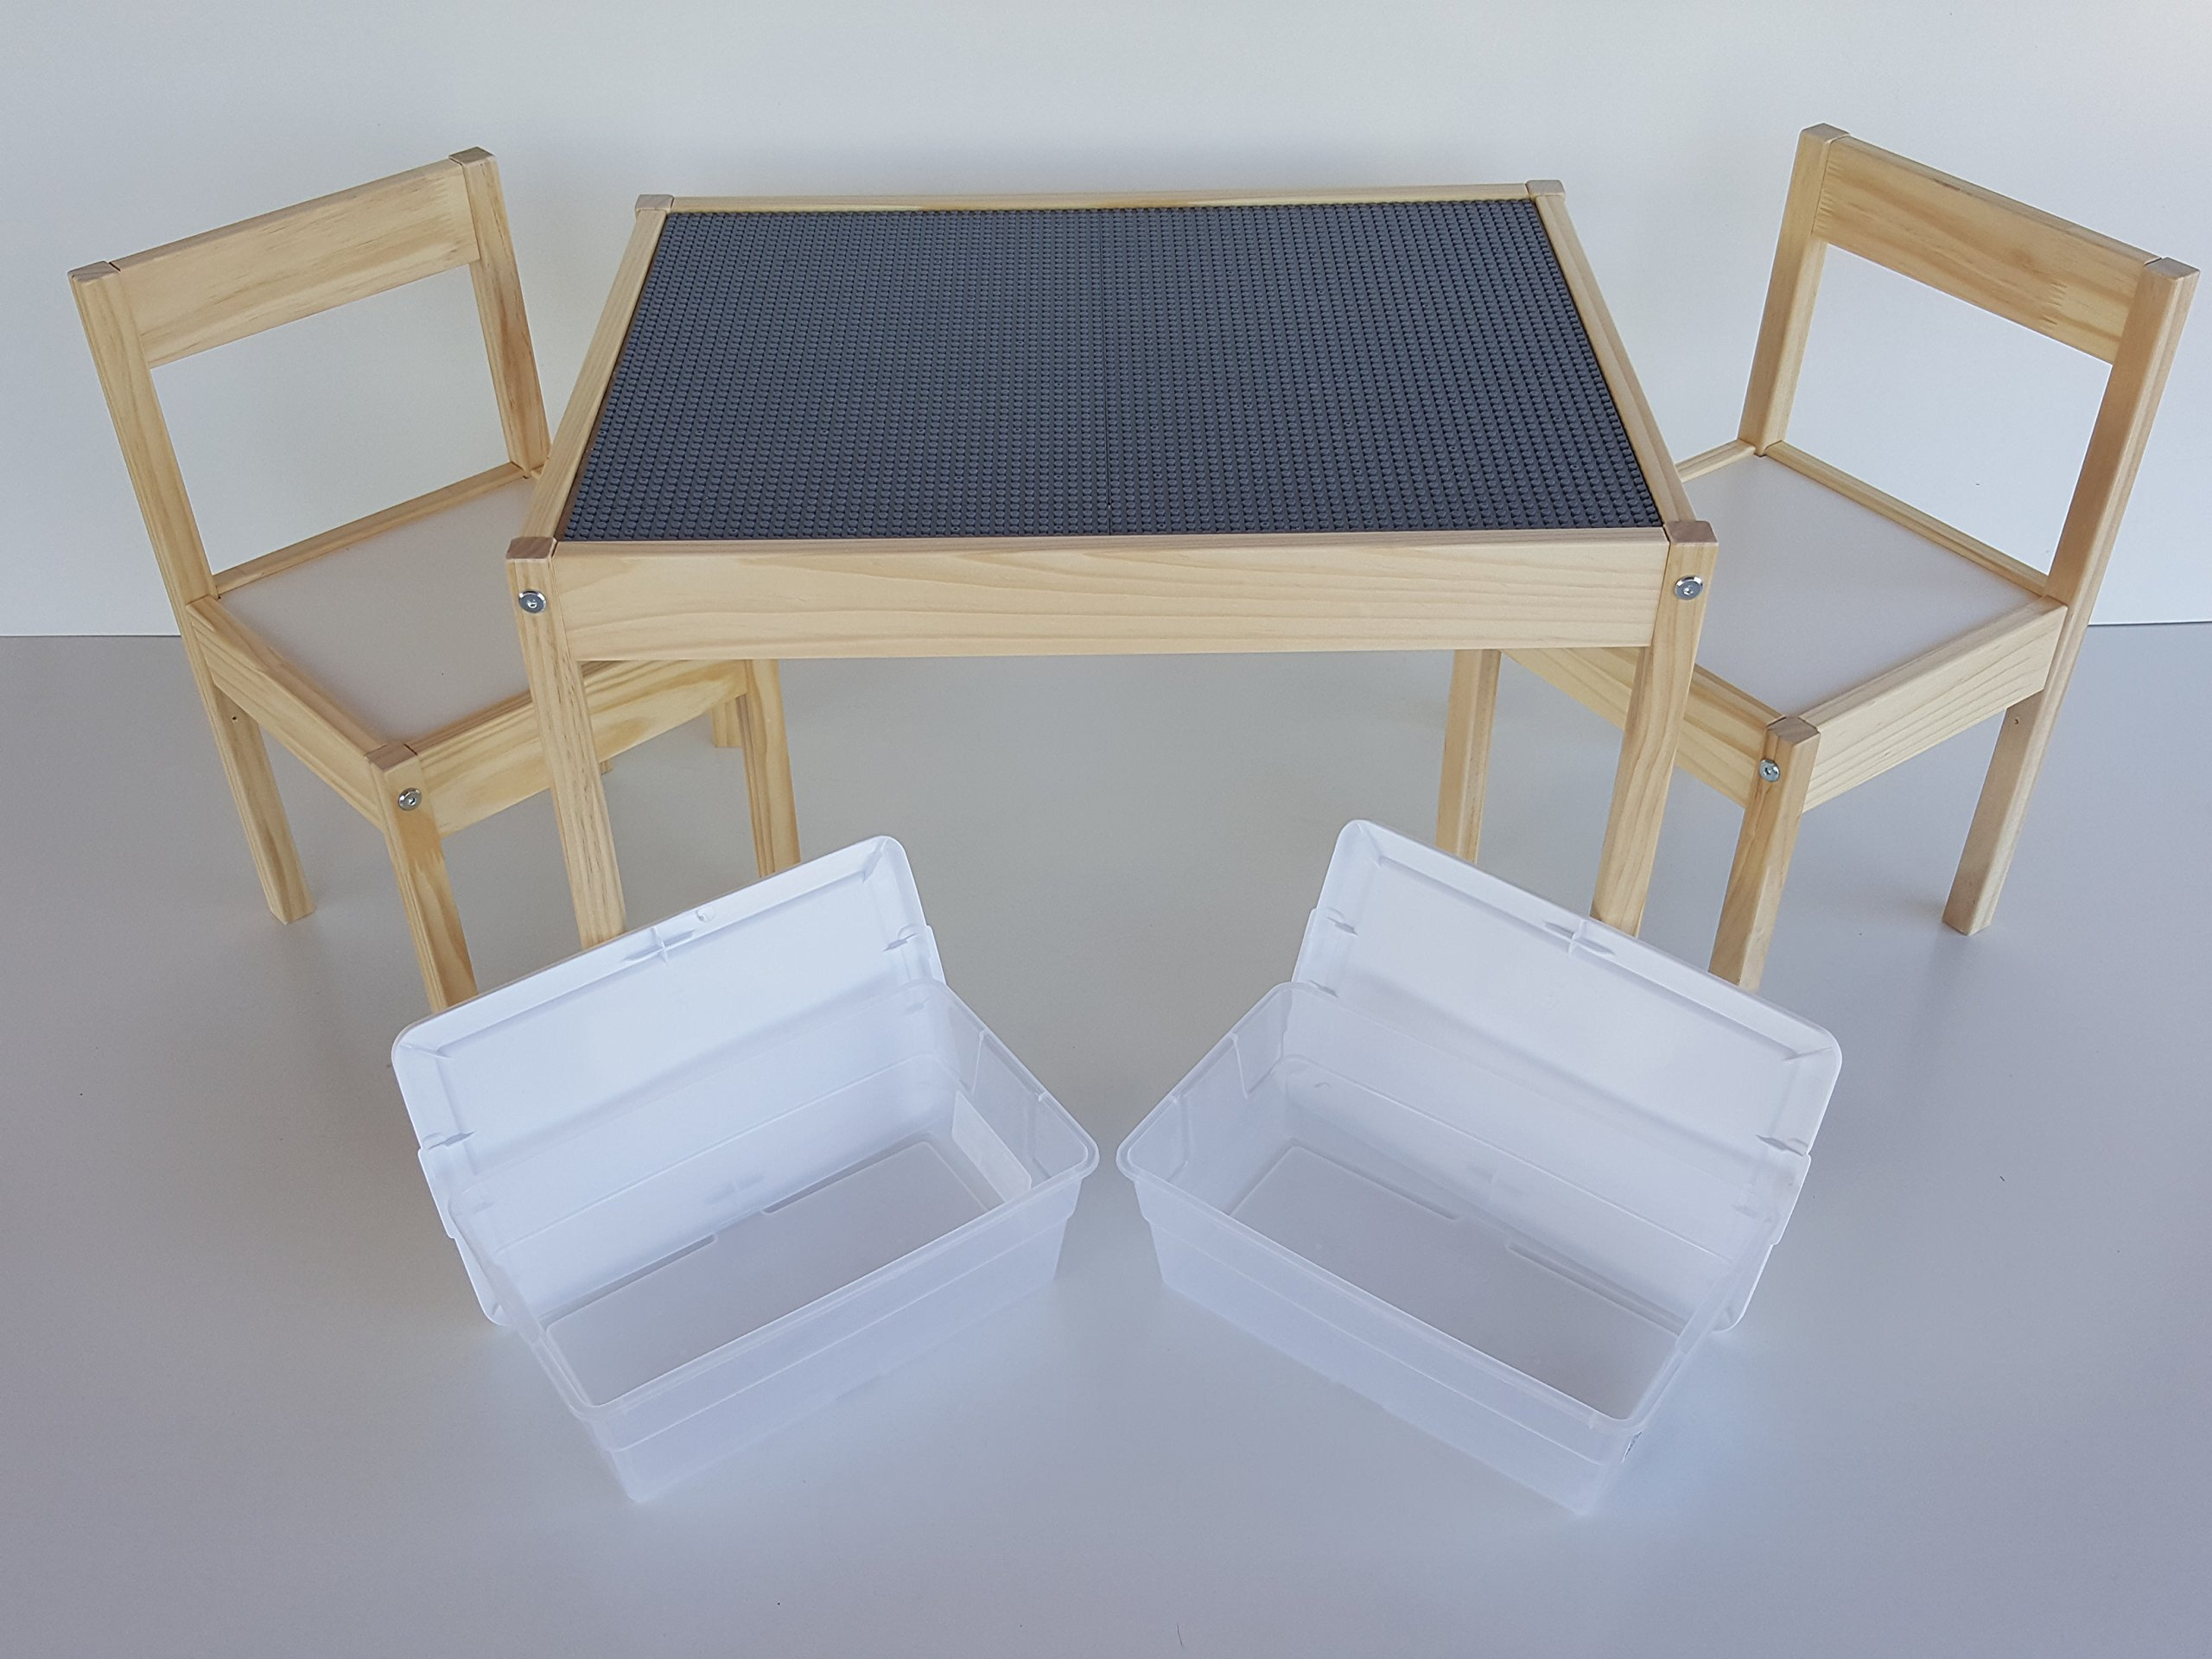 Deluxe Large Grey Lego Table - Includes chairs and 2 storage bins by SCS Custom Woodworks